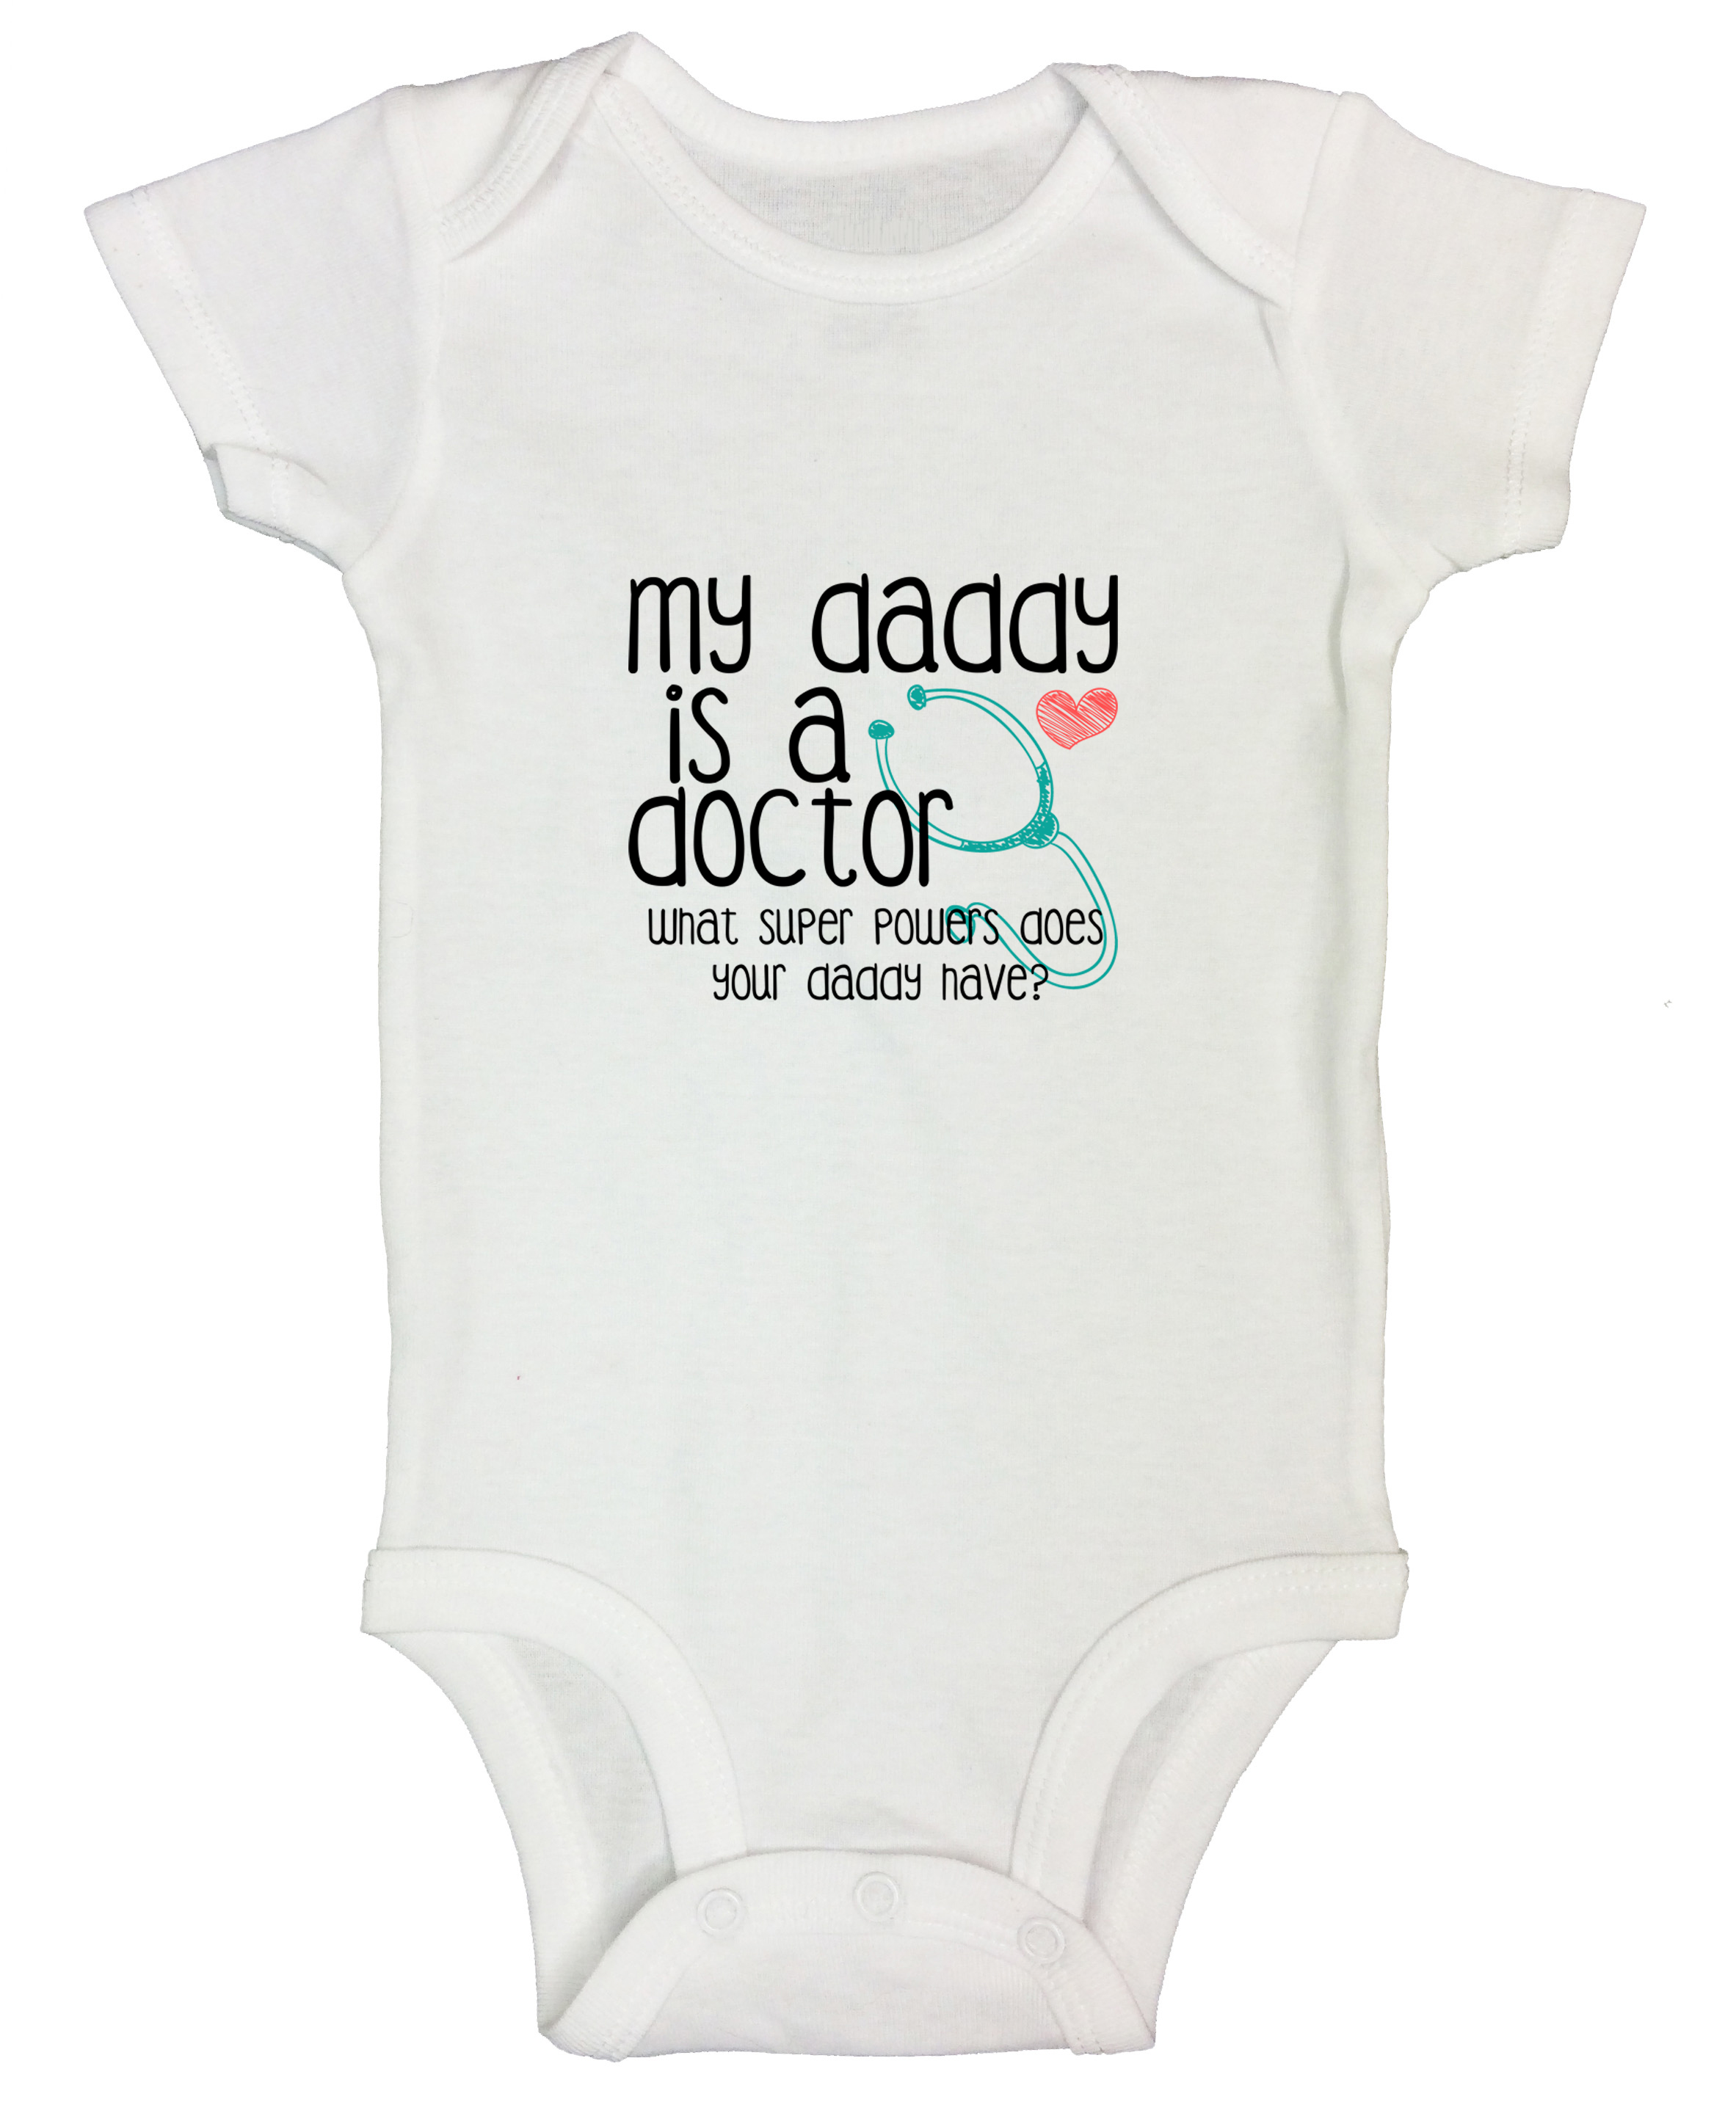 Baby Vests Bodysuit My Daddy Is A Doctor What Super Power Does Yours Have?